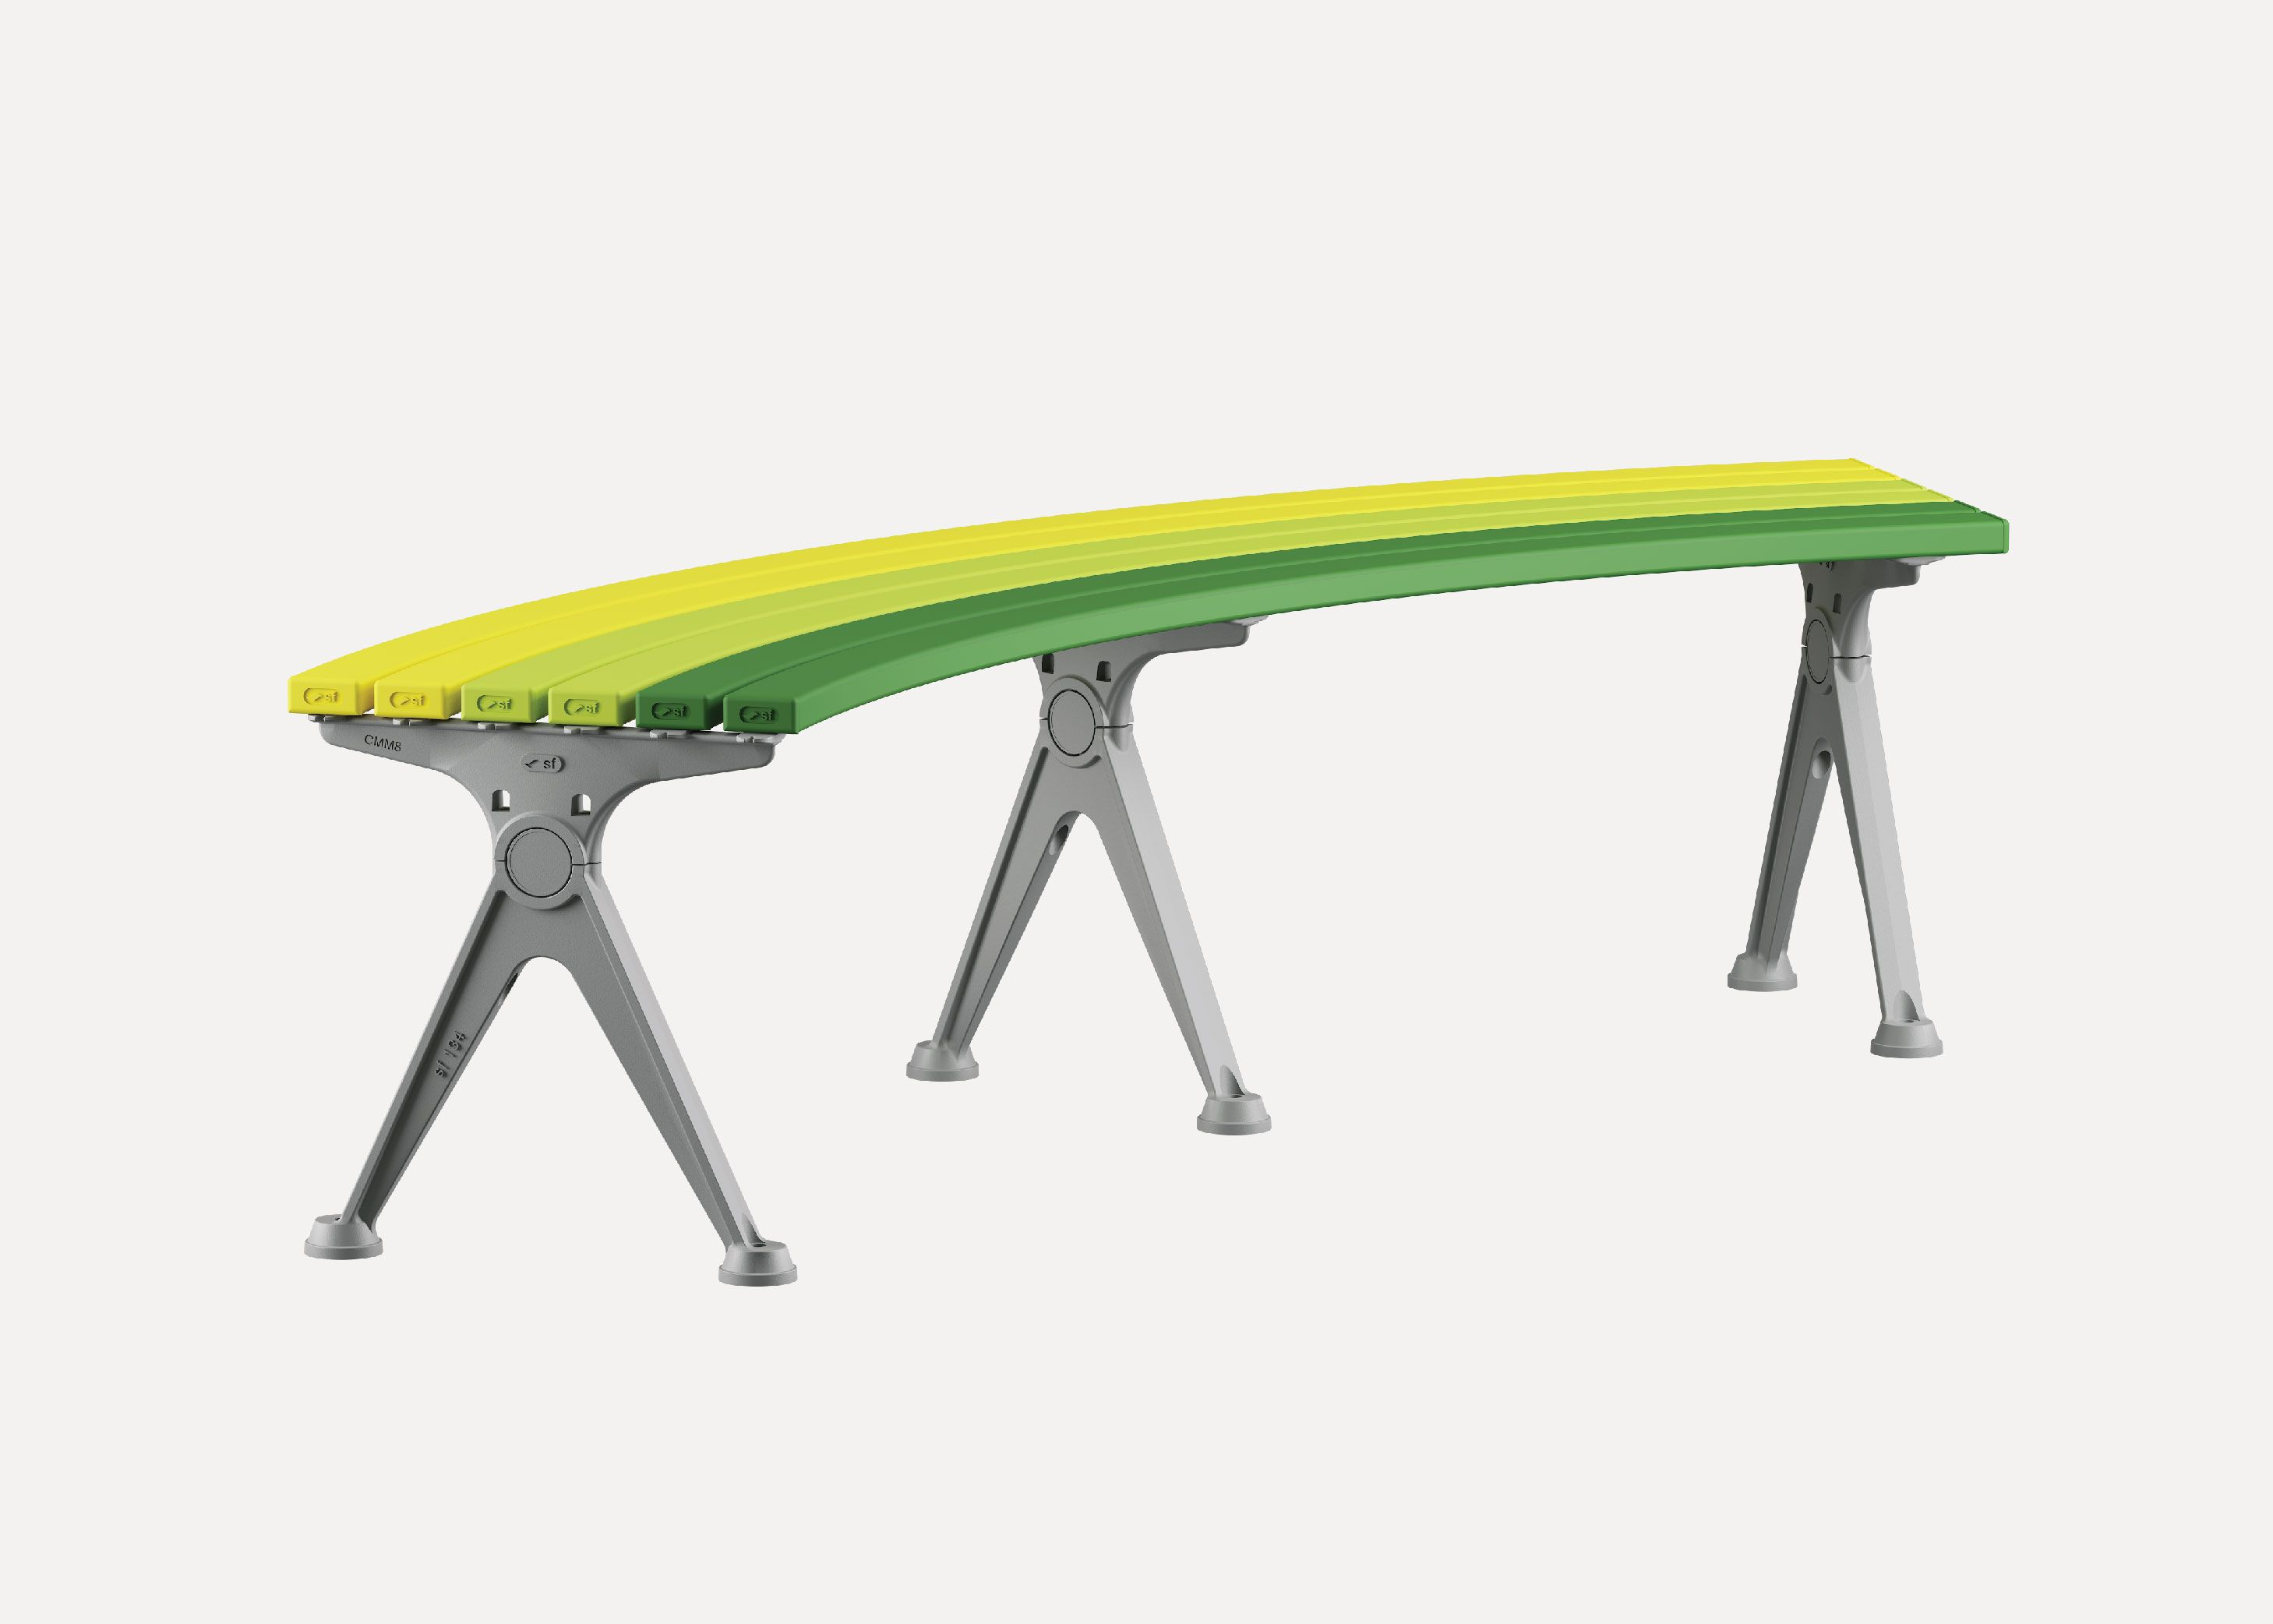 Mall Curved Slim Bench Street Furniture Australia